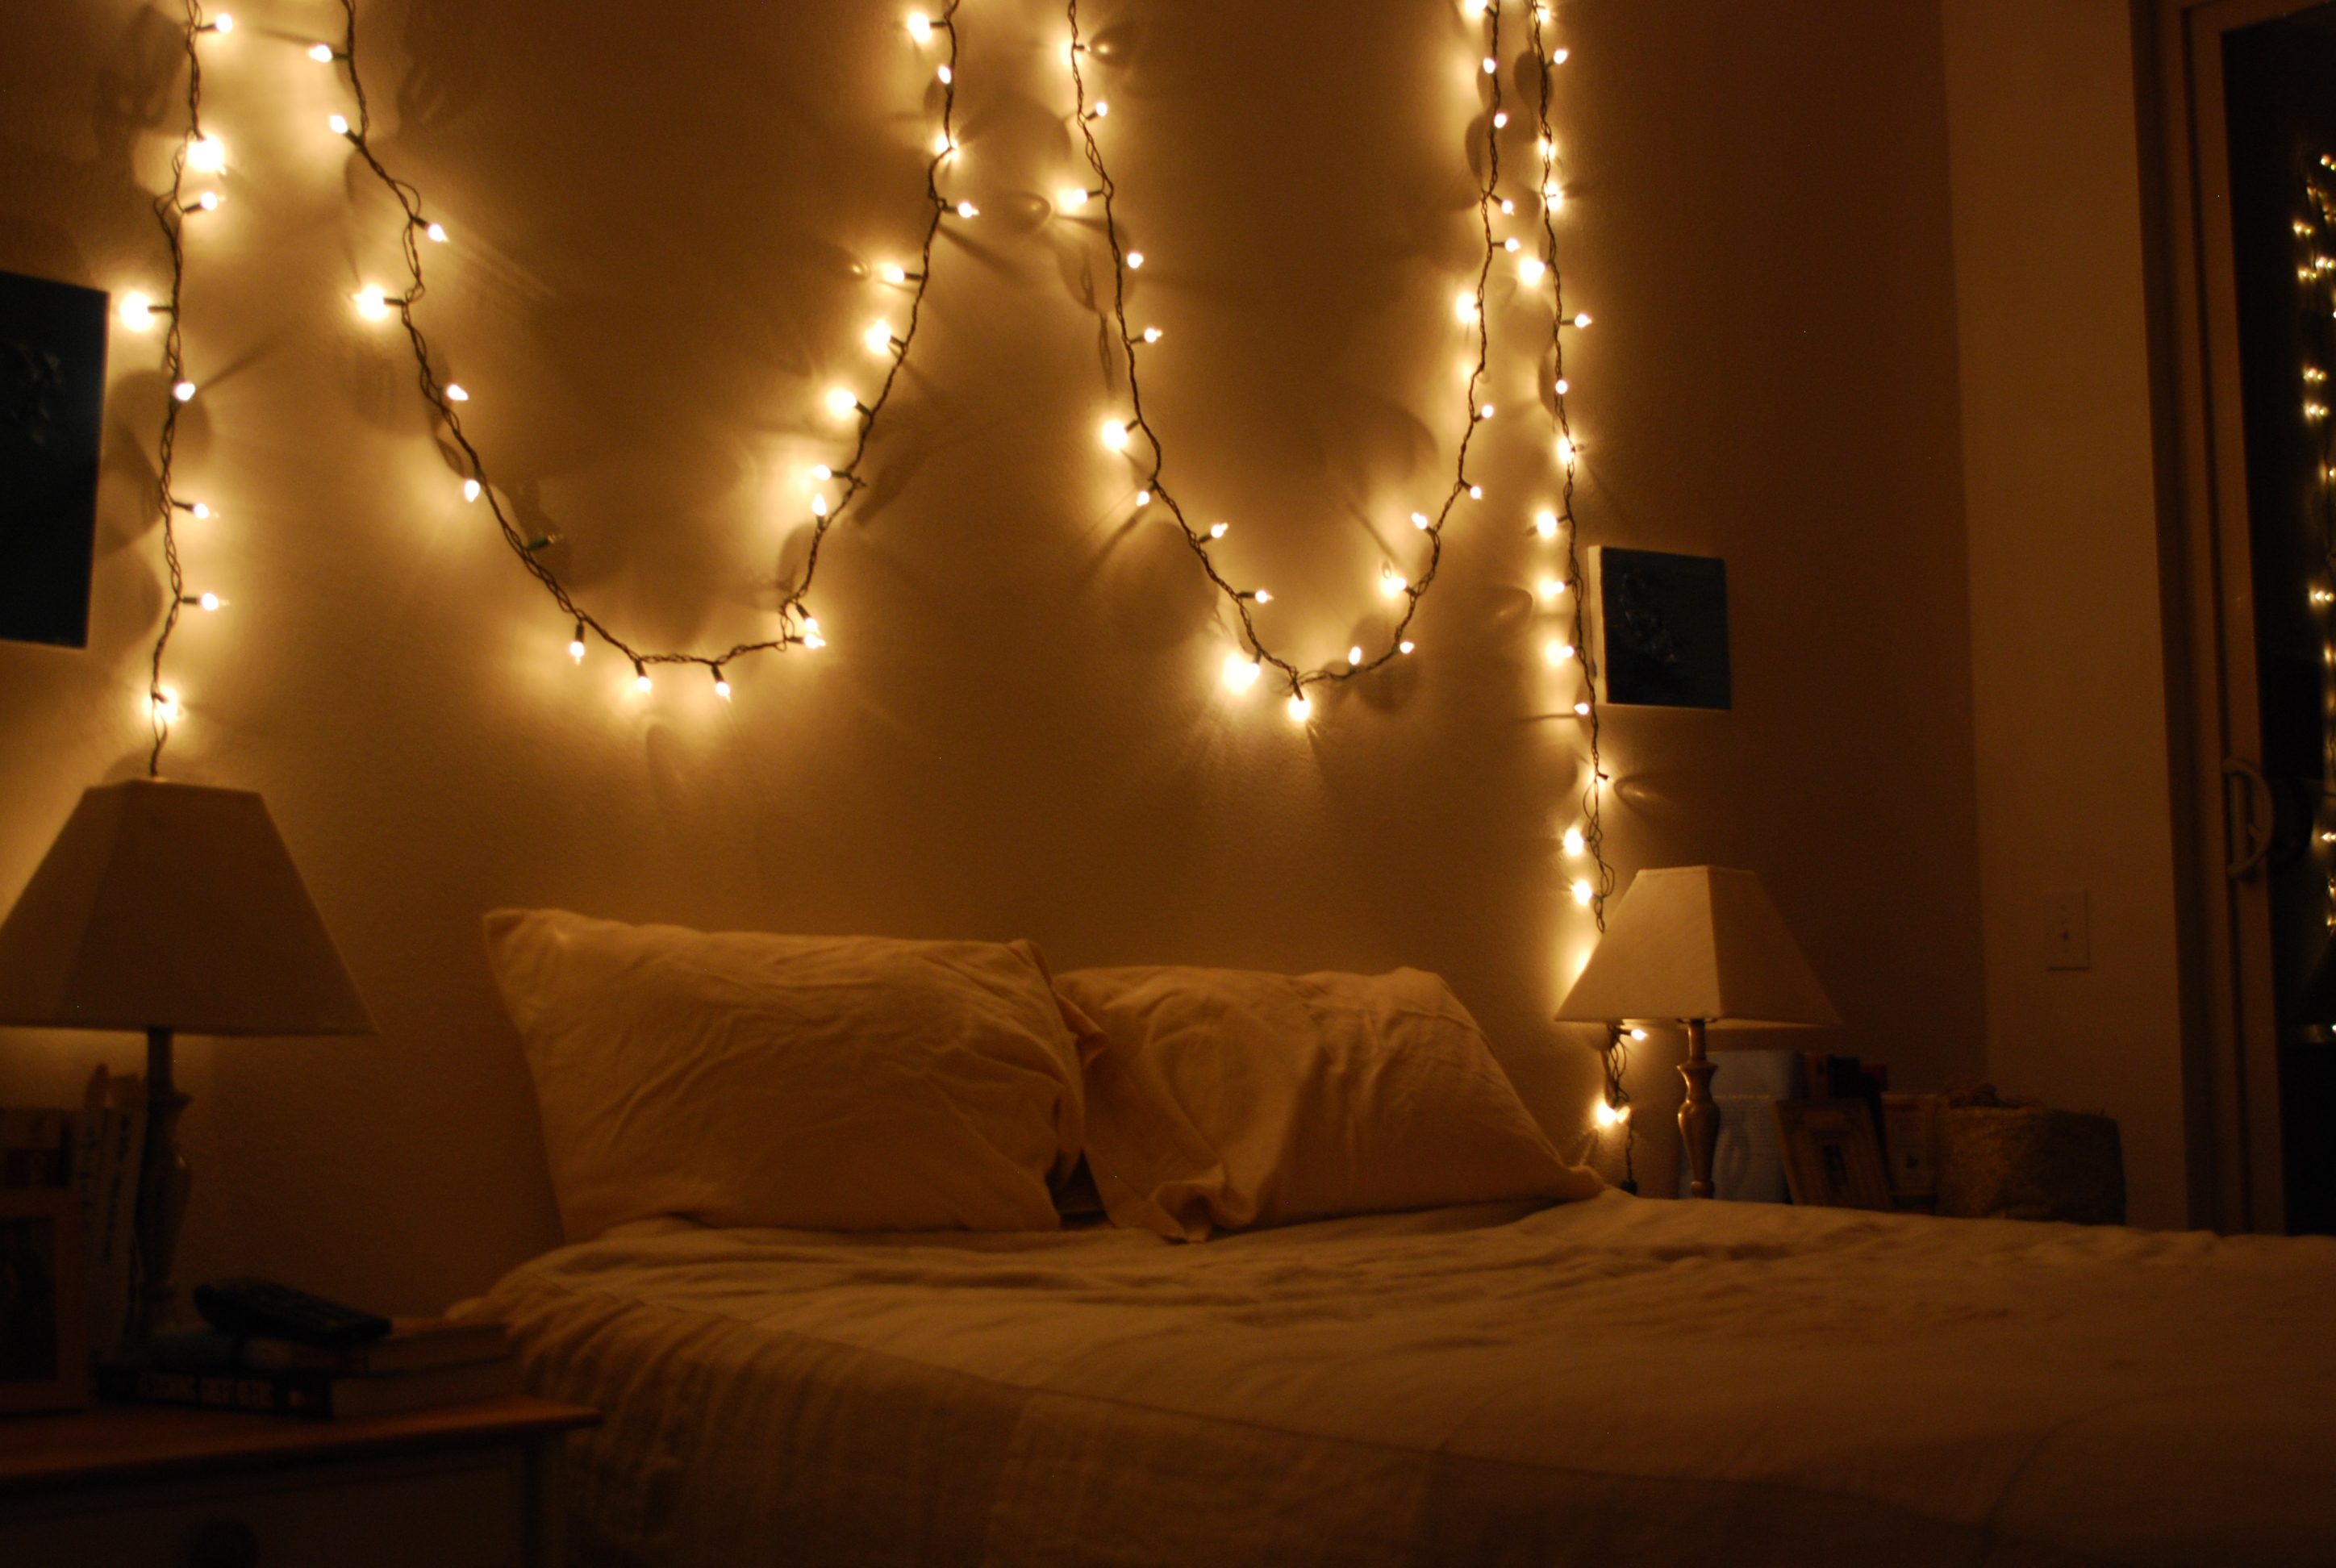 1000 images about bedroom on pinterest christmas lights